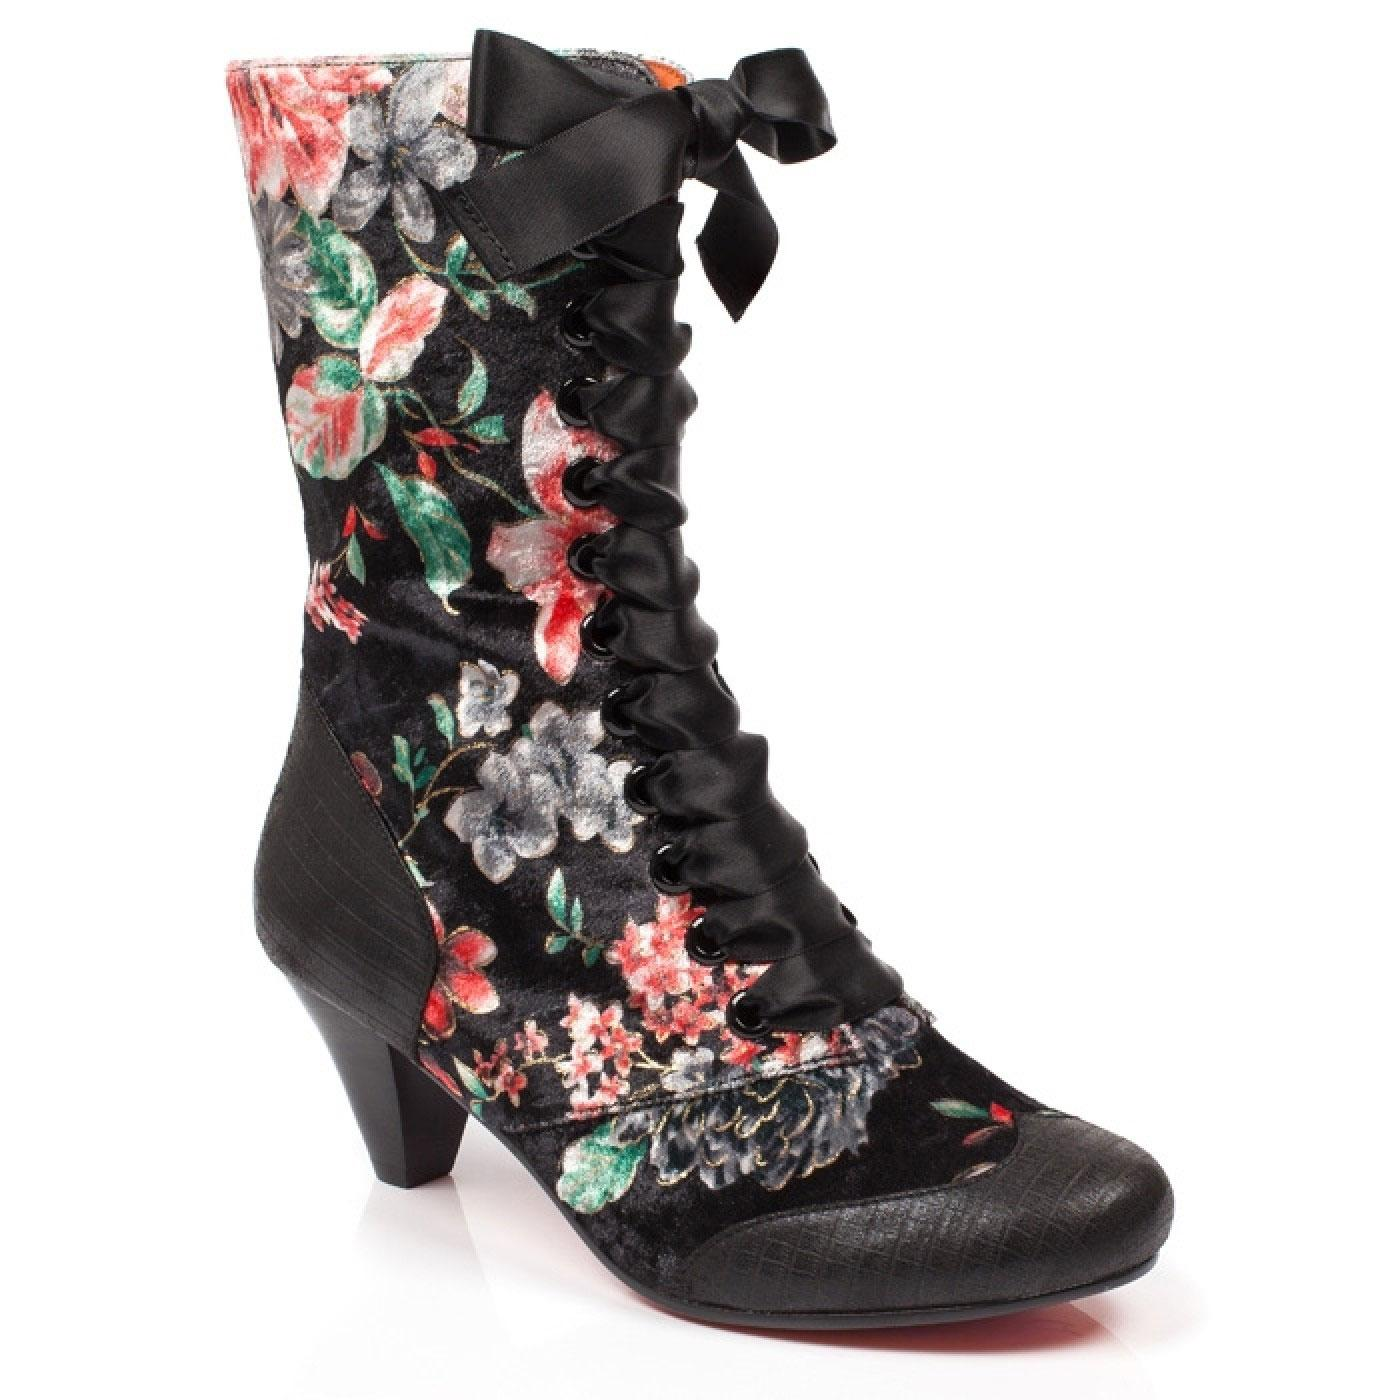 Lady Victoria POETIC LICENCE Floral Painted Boots